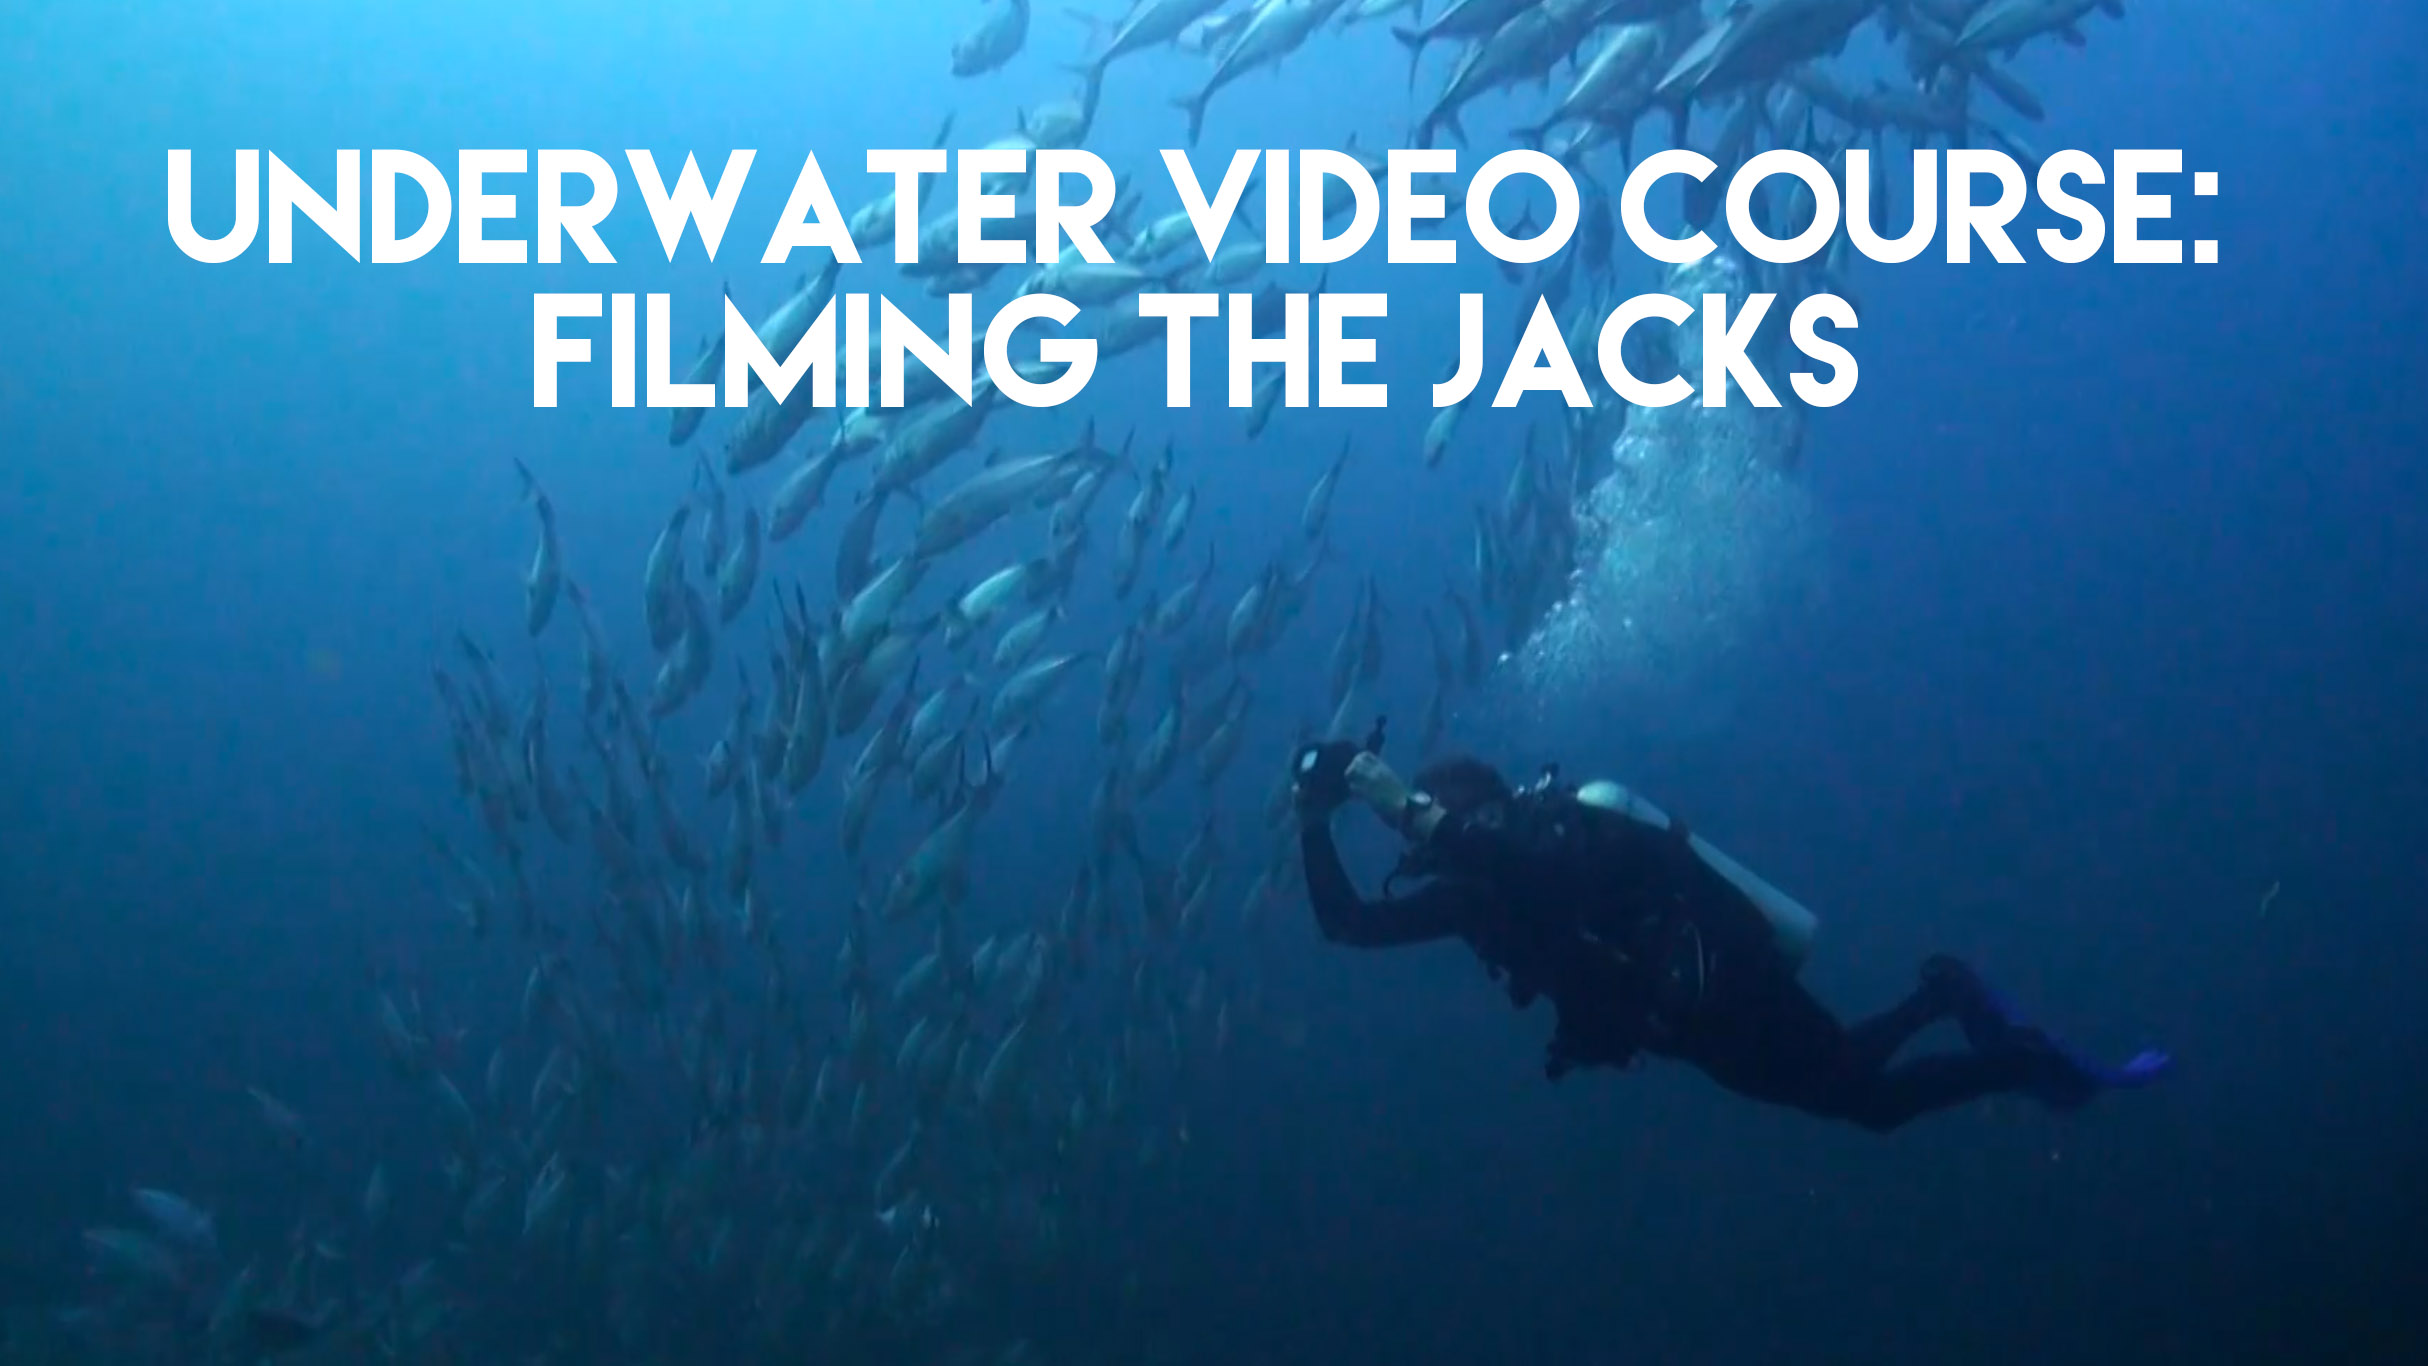 Underwater video course: Filming the Jacks